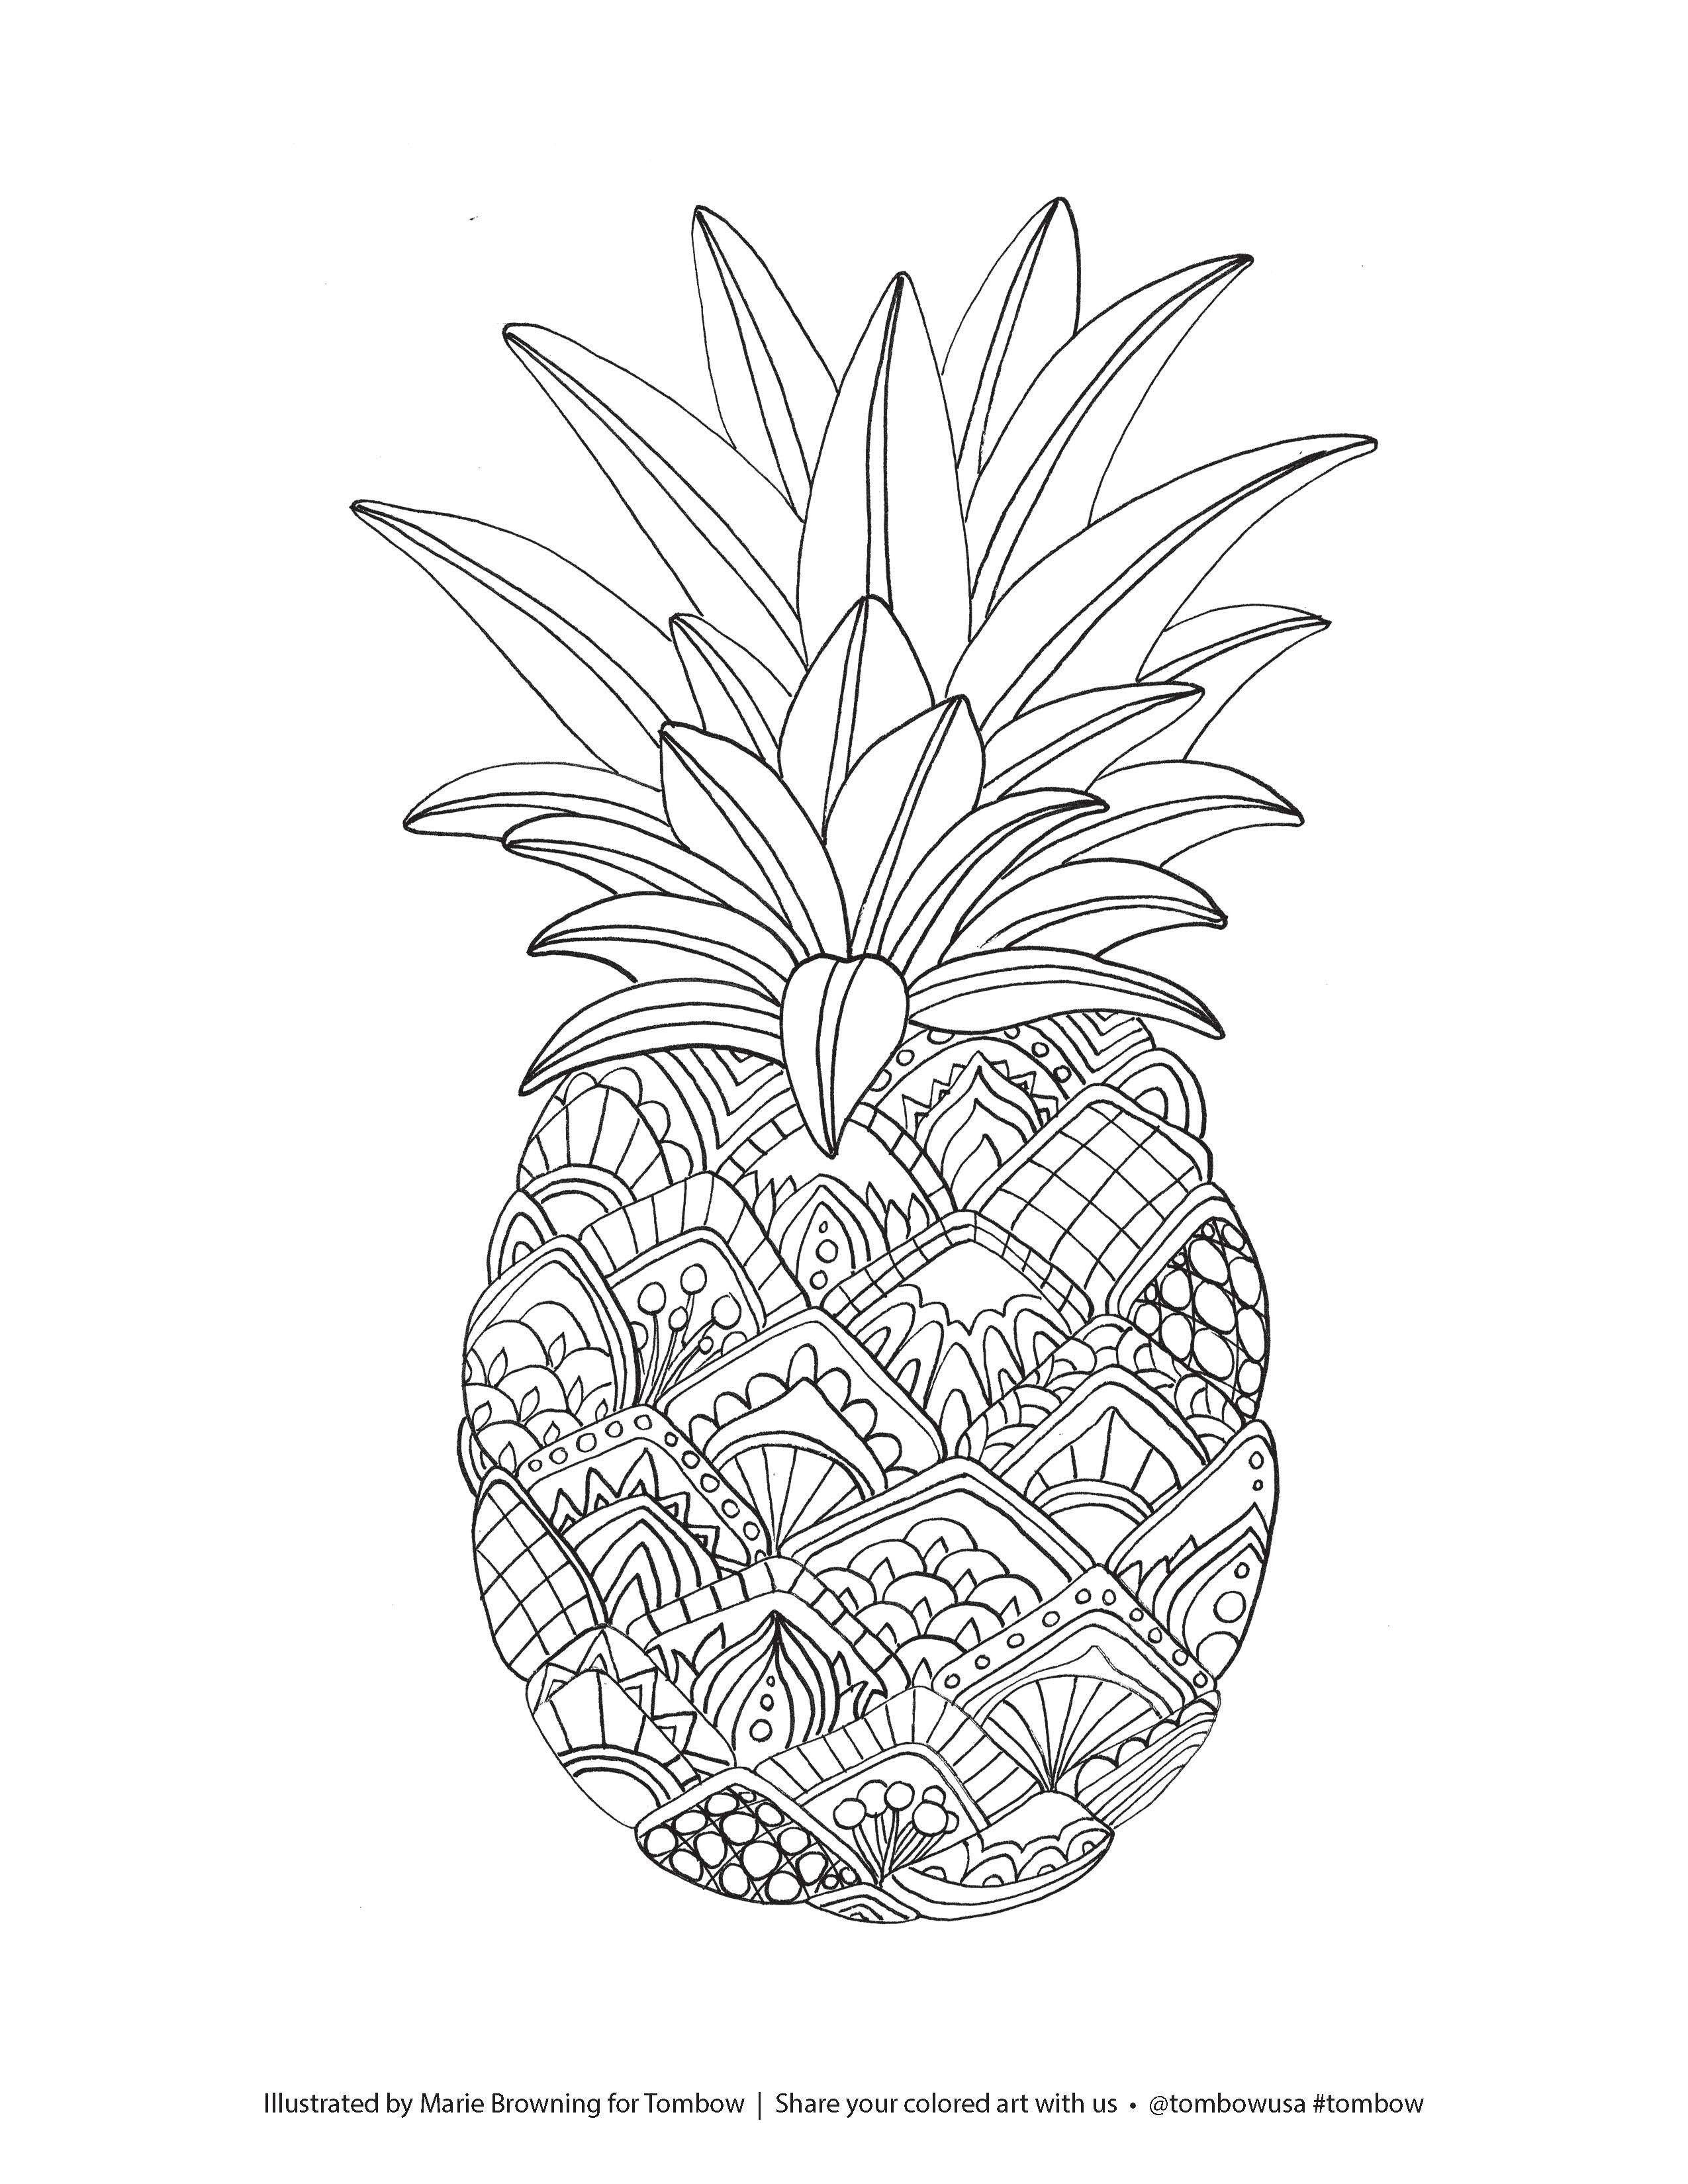 Best ideas about Fruit Coloring Pages For Adults . Save or Pin Zentangle Pineapple Coloring Page illustrated by Marie Now.